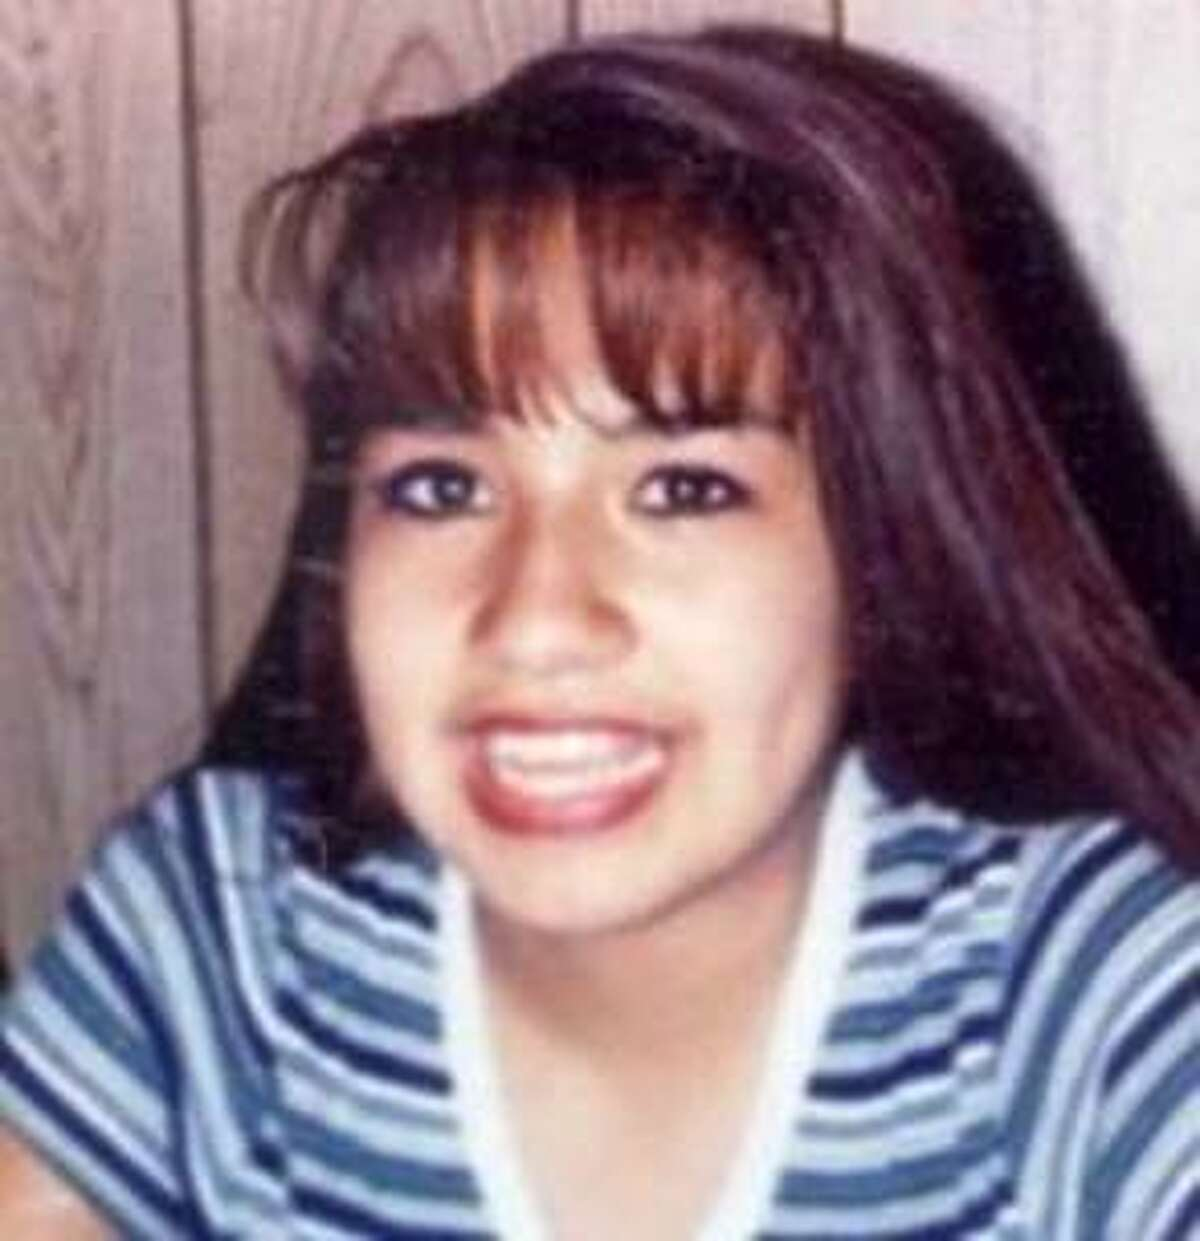 Texas authorities are asking for the public's help in solving the 2003 murder of Cynthia Palacio, who was discovered on July 15, 2003 in southeast Lubbock County. Anyone will information on Palacio is encouraged to contact the Texas Department of Public Safety at 1-800-346-3243.Scroll ahead to see serial killers who have operated in Texas.